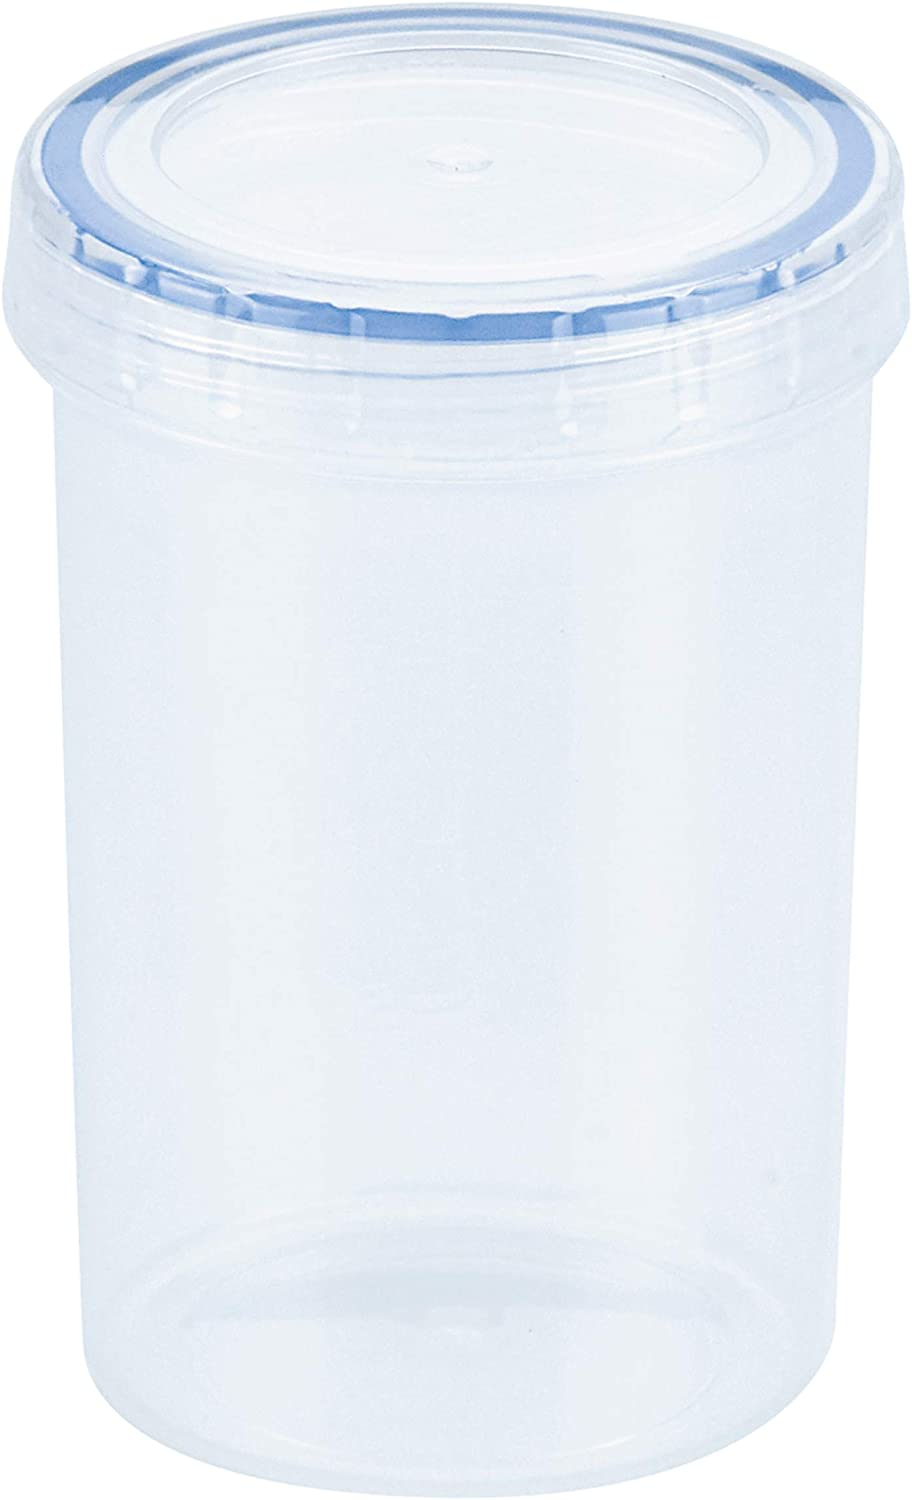 LOCK & LOCK Easy Essentials Twist Food Storage lids/Airtight containers, BPA Free, Tall-11 oz-for Nuts, Clear